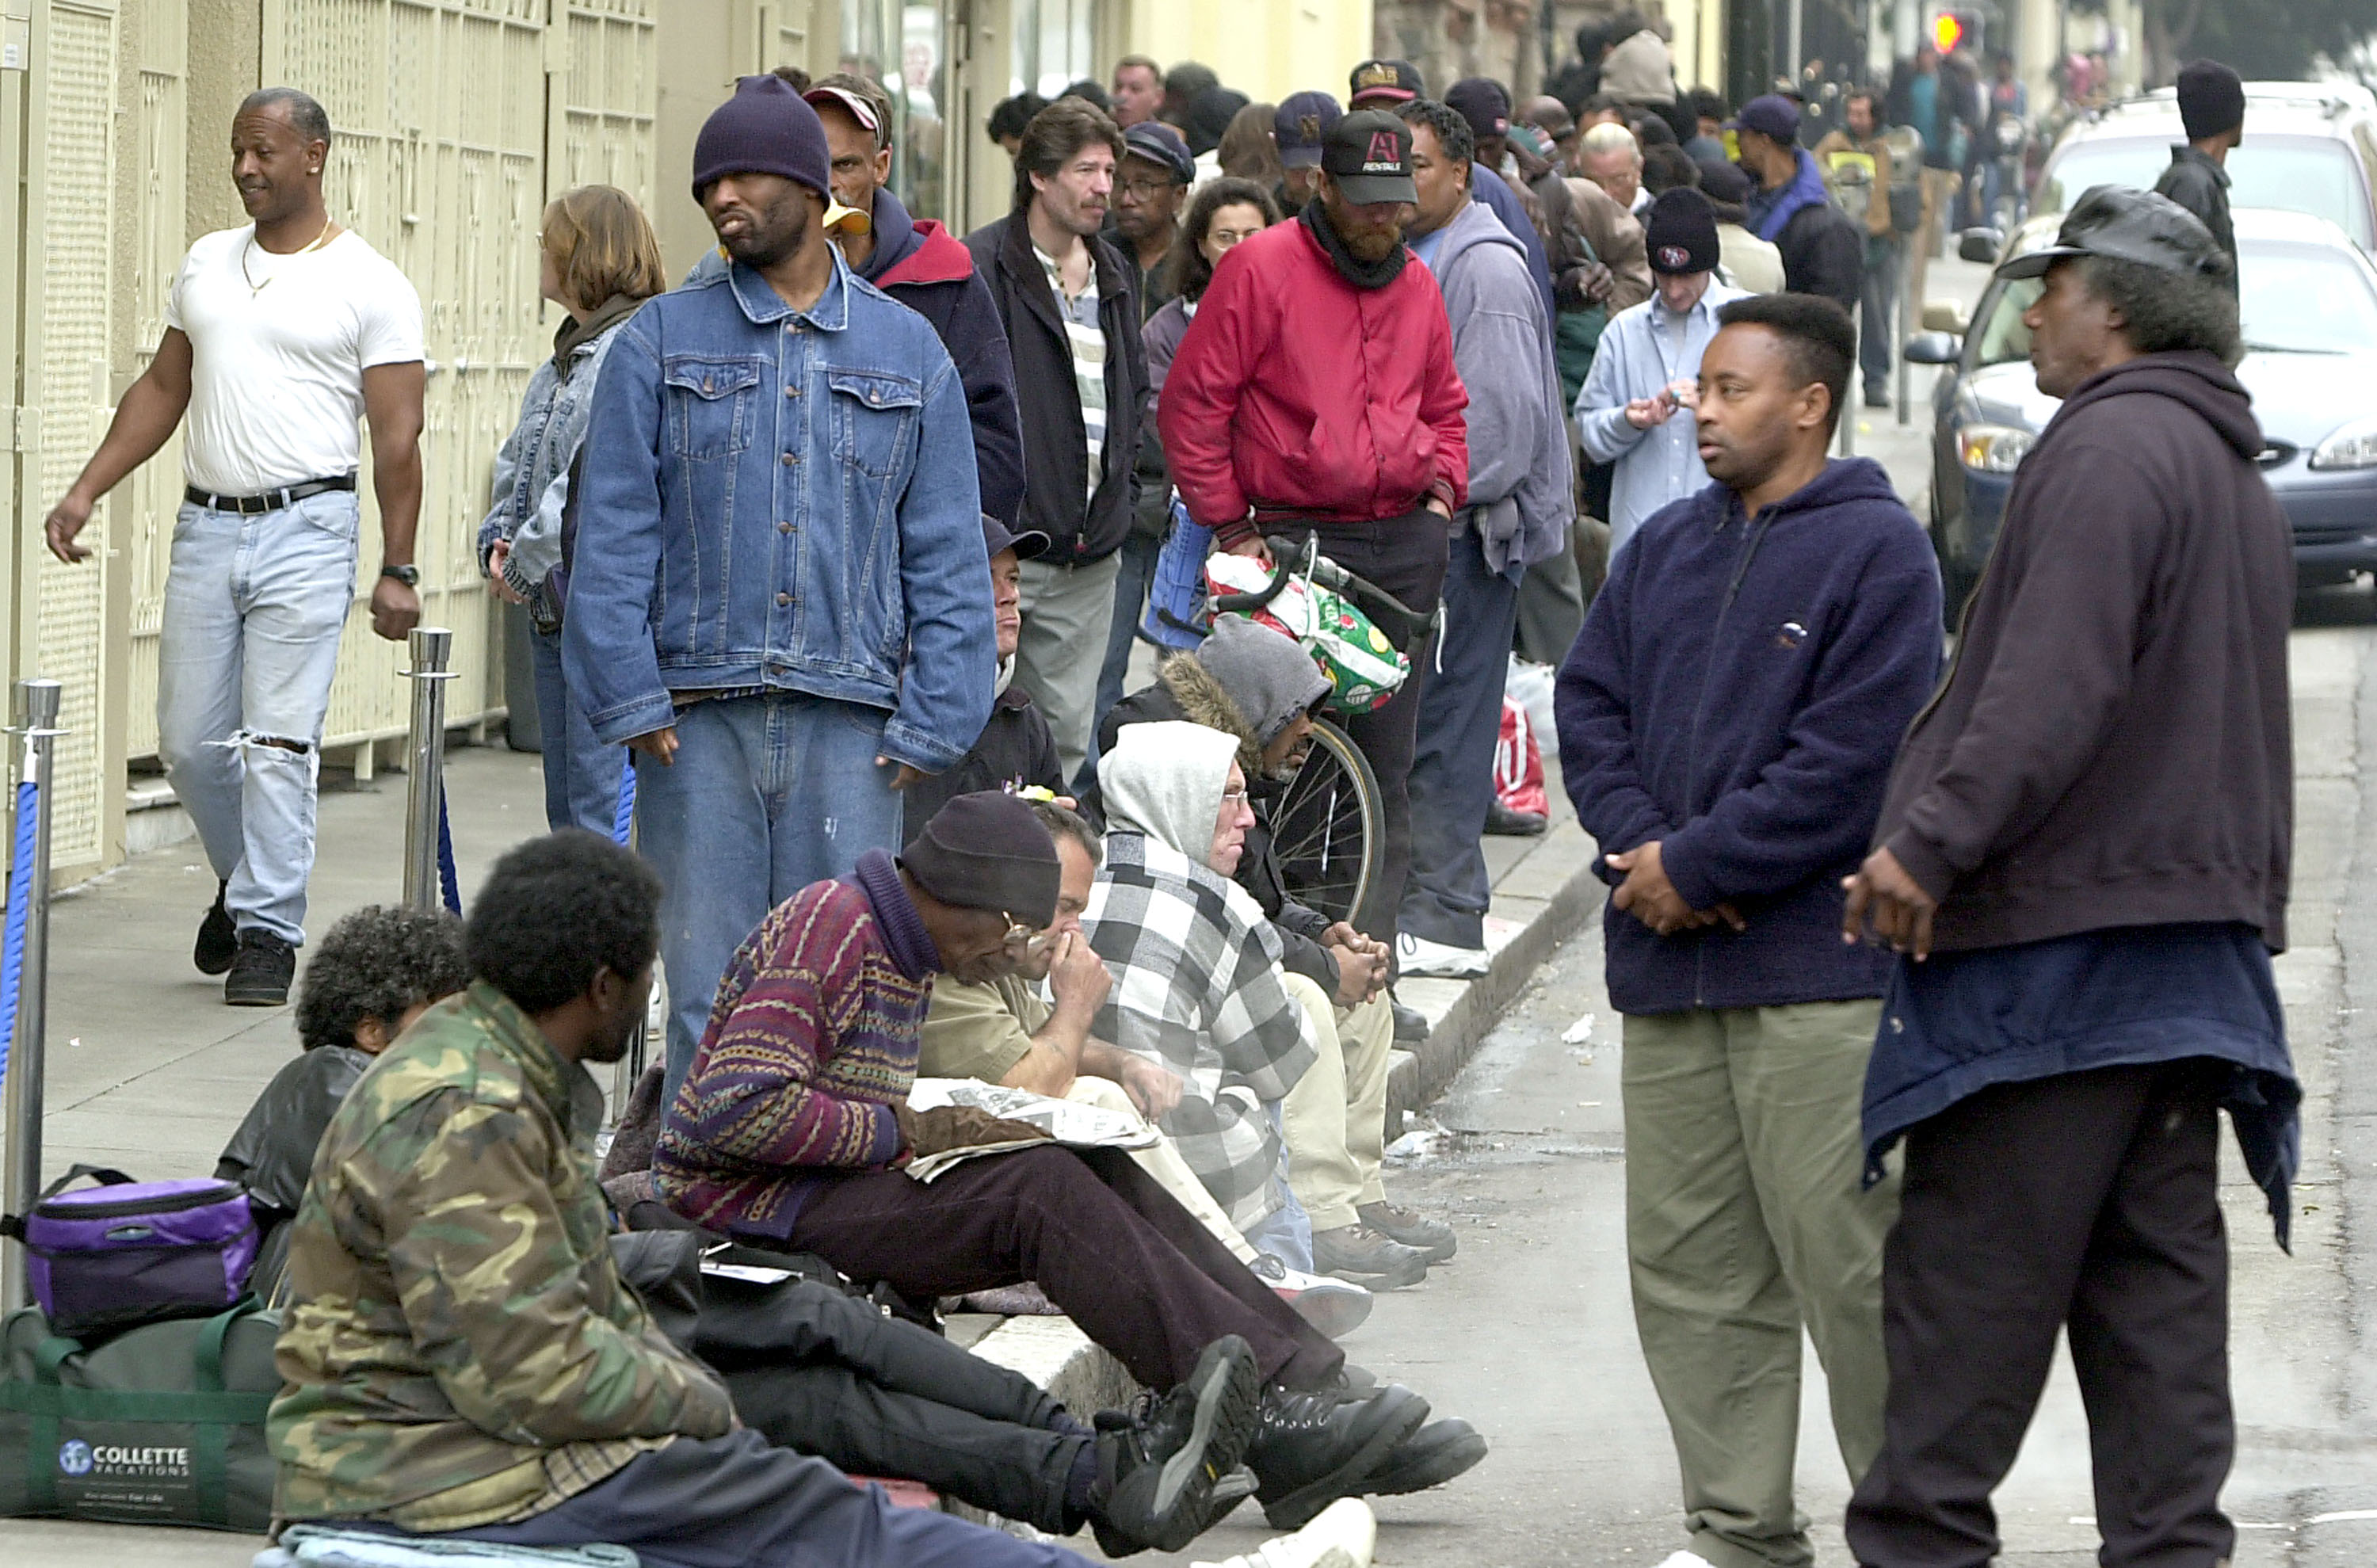 SAN FRANCISCO, CA - DECEMBER 6: Dozens of homeless people line up for a free meal at St. Anthony's church December 6, 2002 in San Francisco, California. San Francisco has attracted increasing numbers of homeless people in recent years. Official estimates tally homeless in the area to more than 12,000. Some people believe that the homeless are drawn to the area, in part, by welfare payments that are far too generous. (Photo by Justin Sullivan/Getty Images)